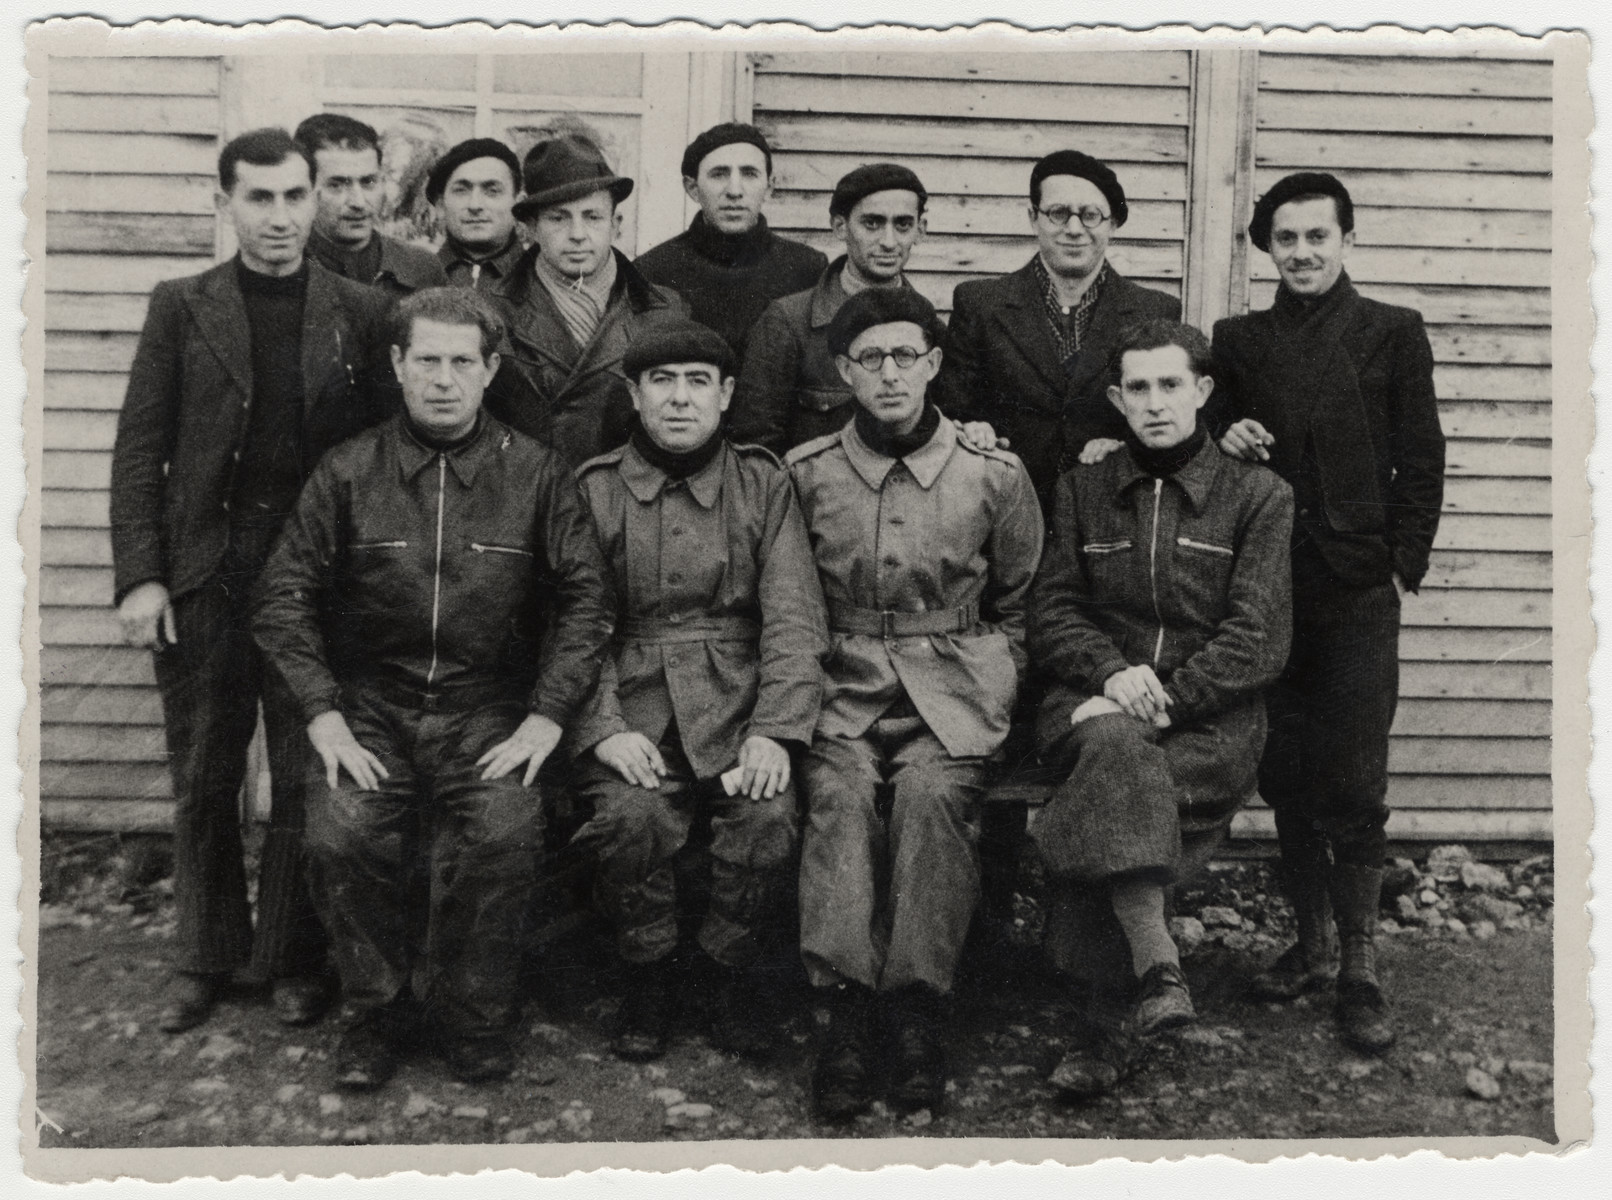 Group portrait of Jewish prisoners in the Beaune-la-Rolande internment camp.  Pictured seated is Itzrik Sztal (far left).  Standing are Moishe Sztal (far left), Chil Jankiel Sztal (second from left) and Jankiel Michalowicz (sixth from the left).